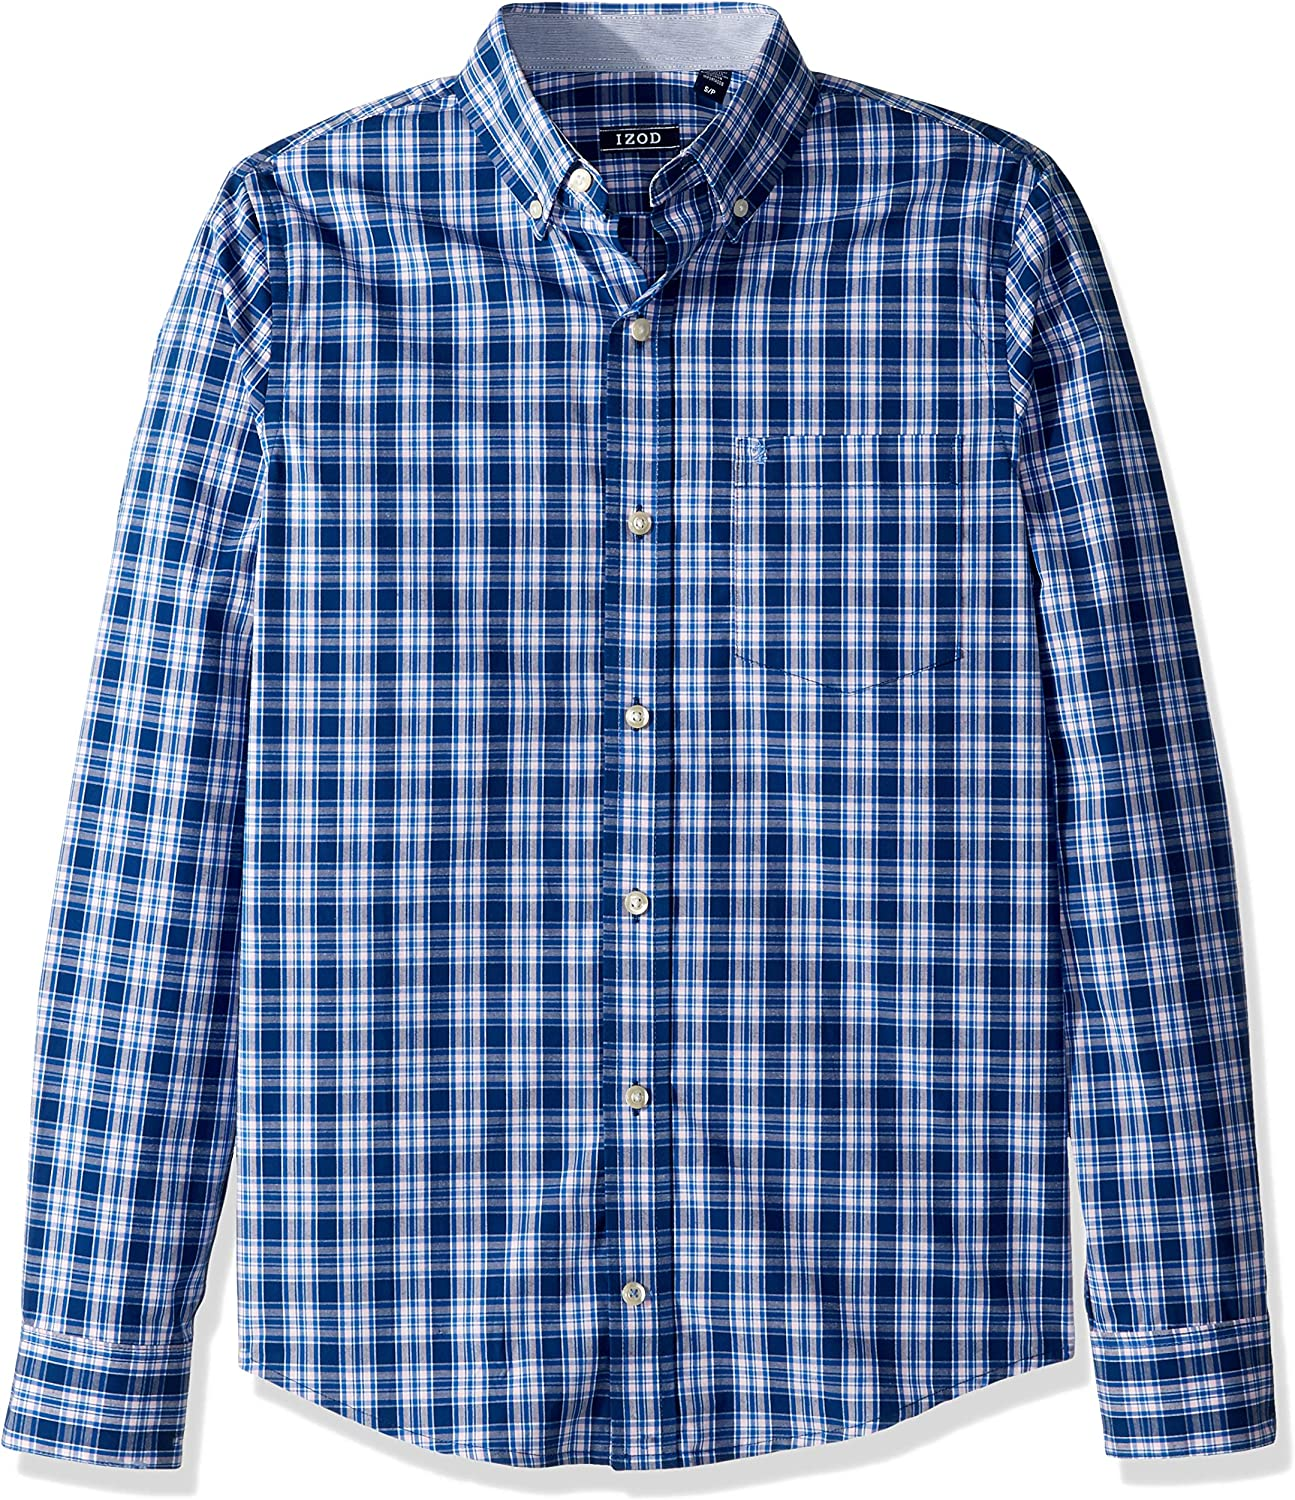 IZOD Men's Slim Fit Button Down Long Sleeve Stretch Performance Plaid Shirt (Discontinued)